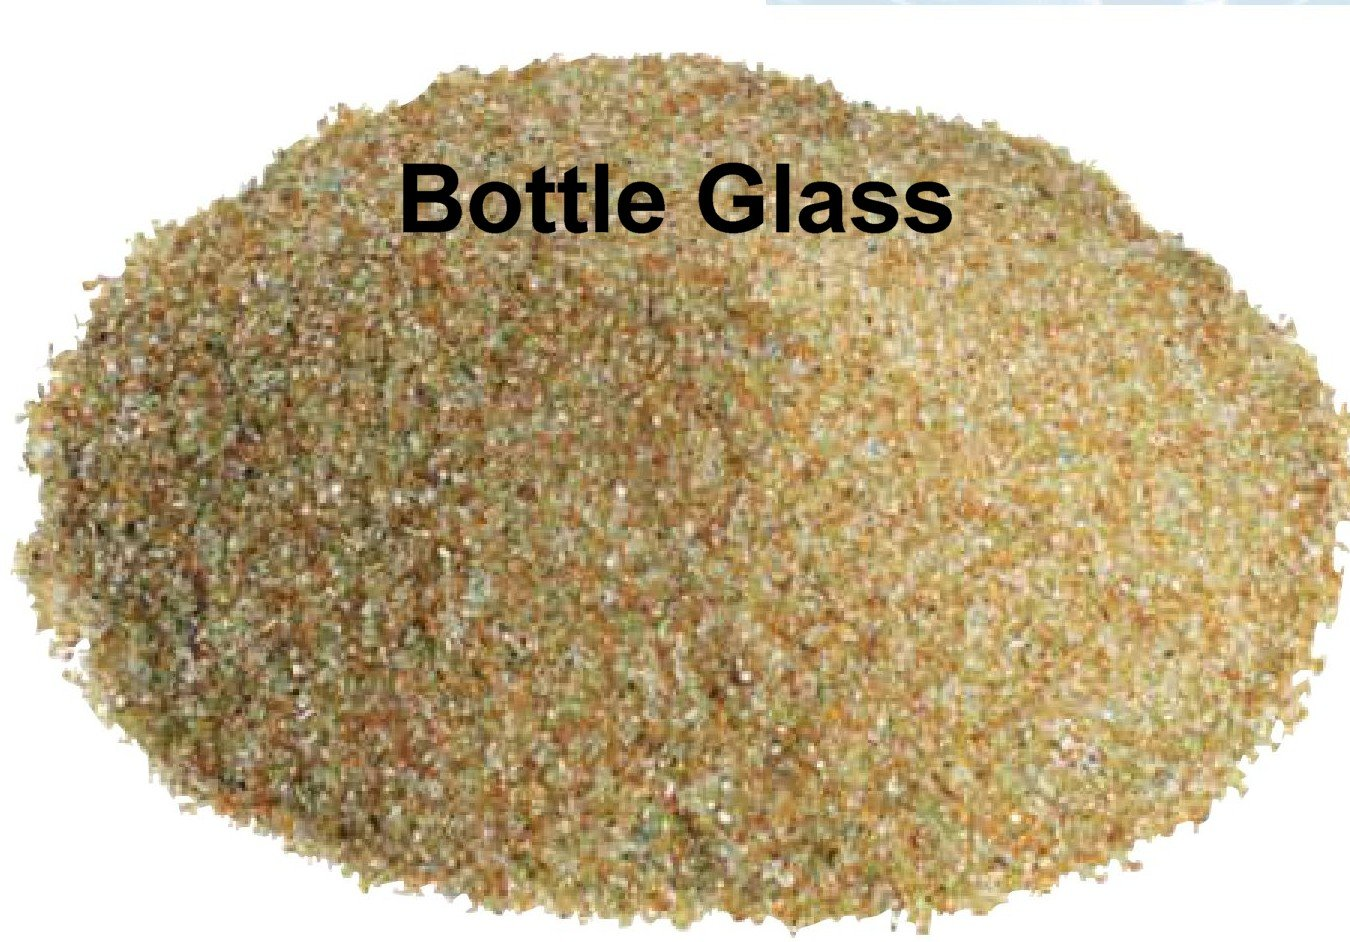 Bottle Glass.jpg